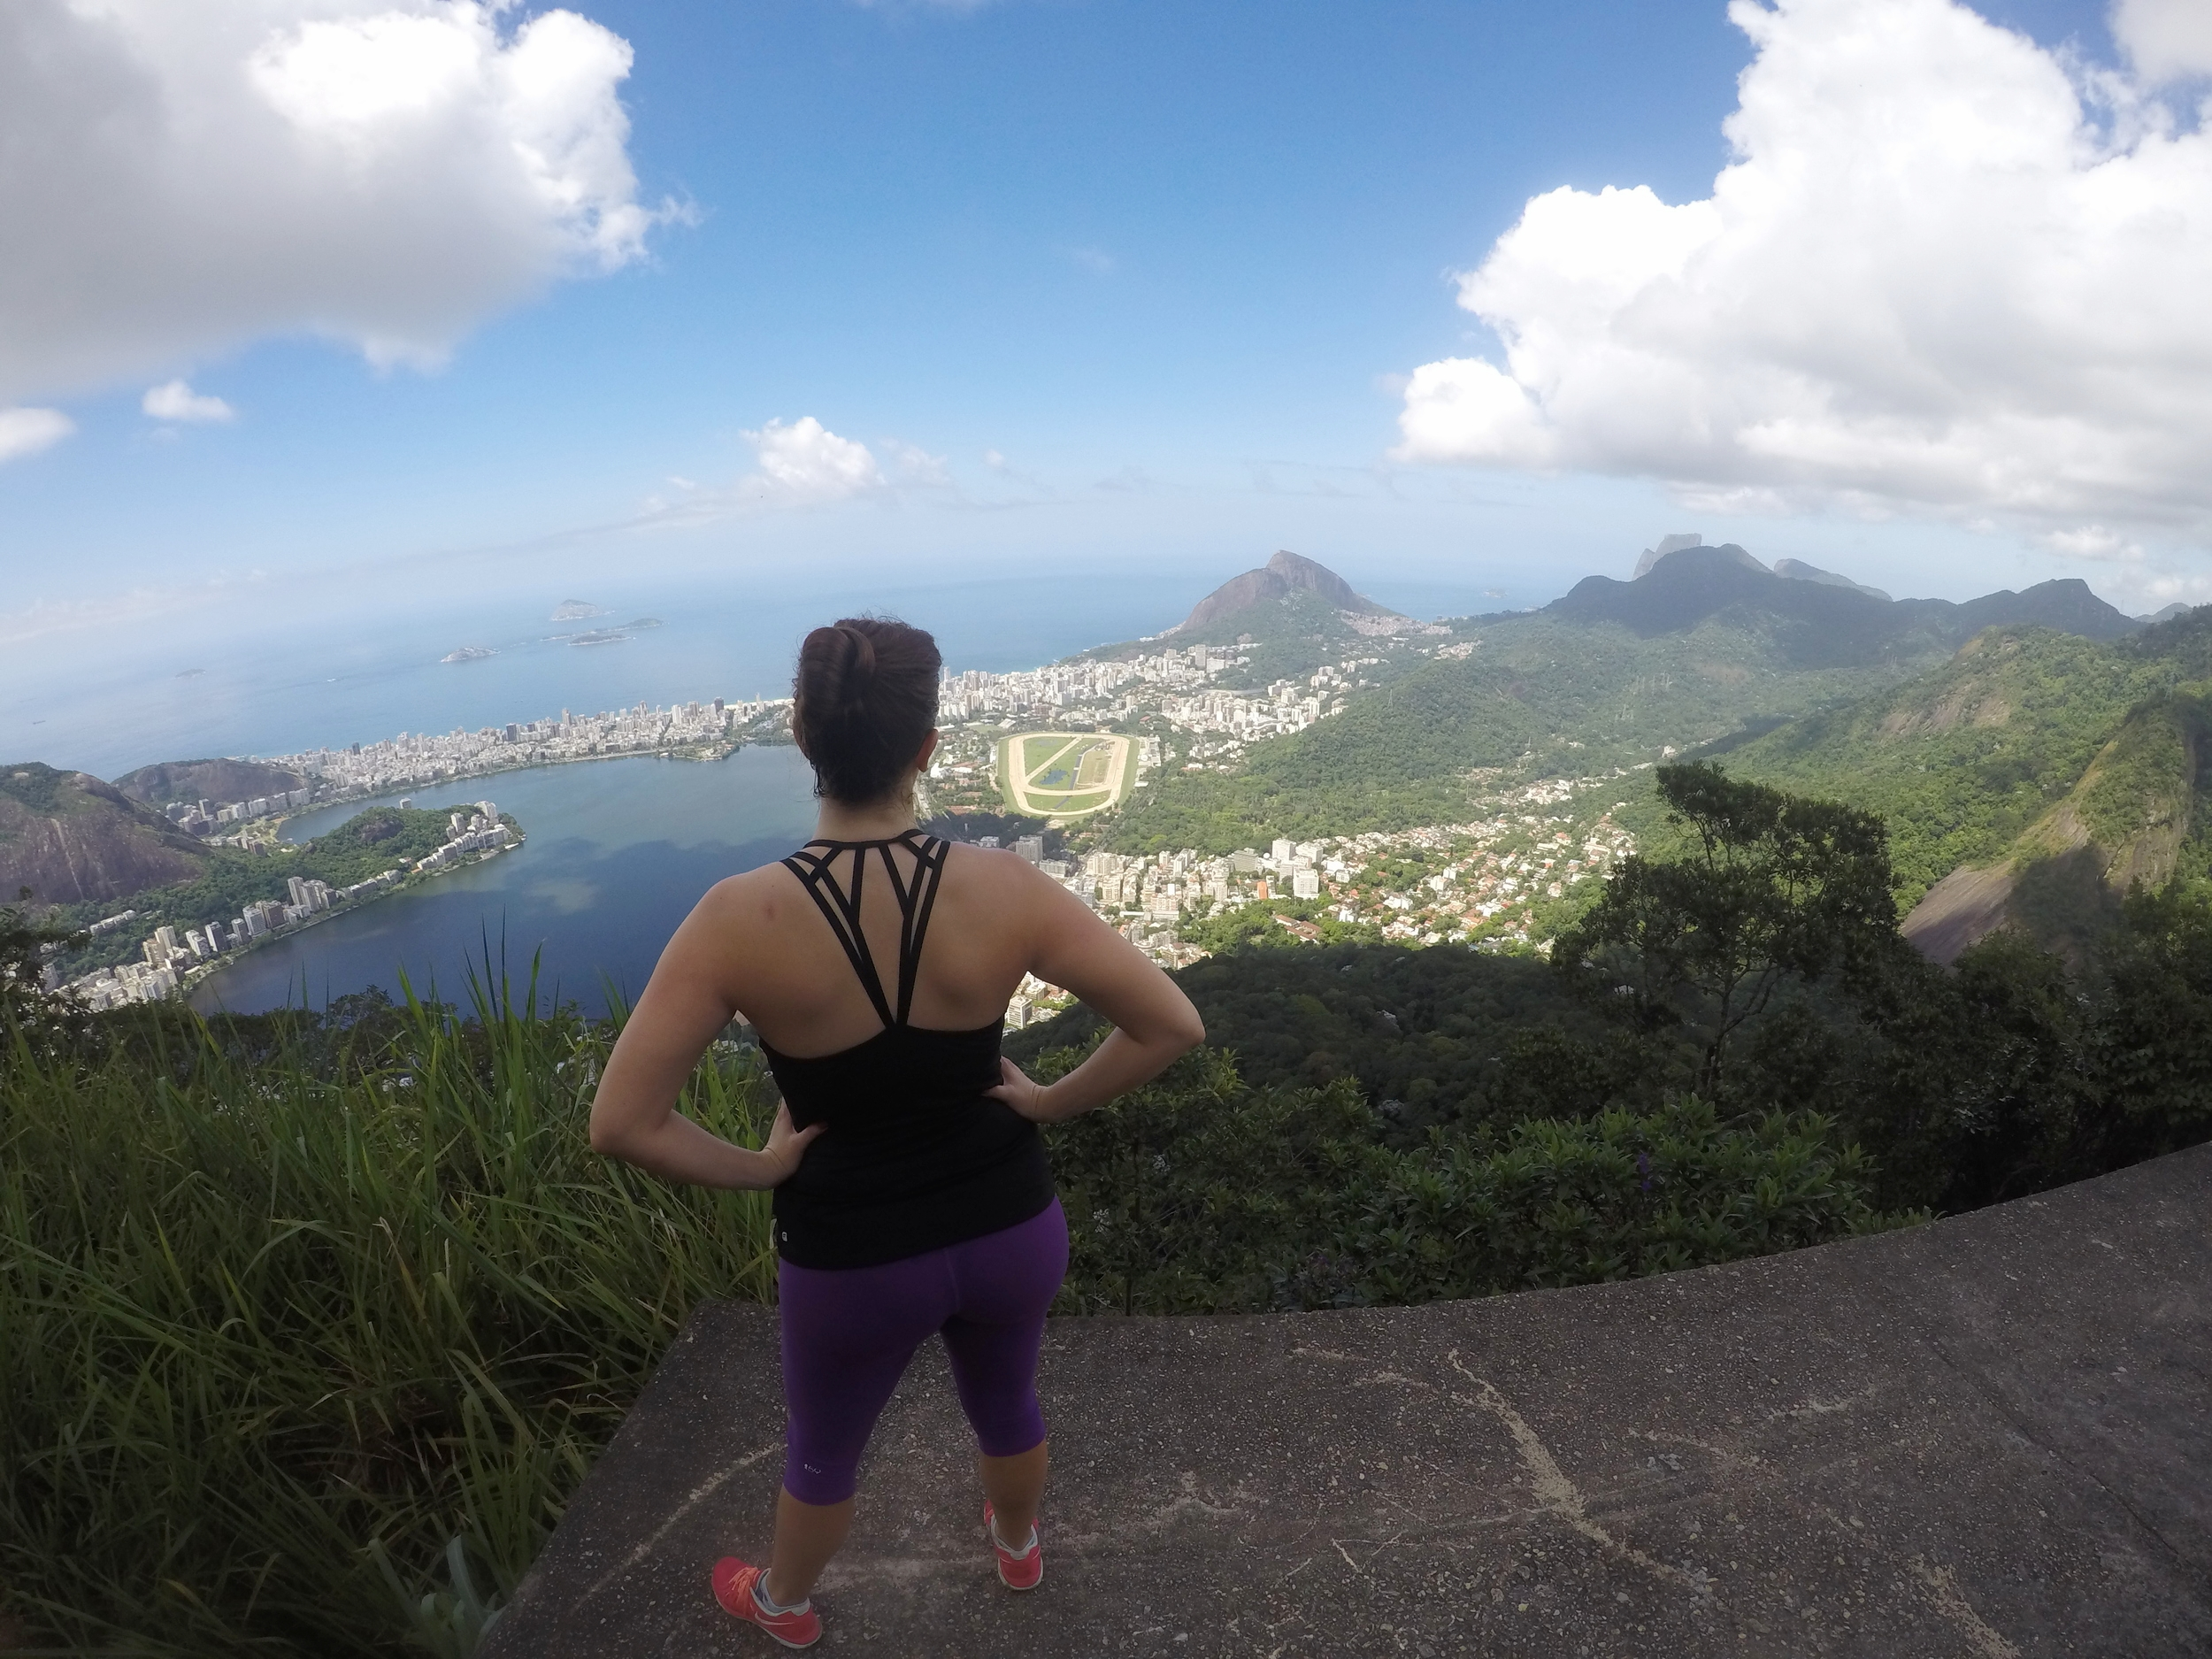 The view from hiking to the top to Christ the Redeemer in Rio De Janeiro, Brazil - Rio Travel Tips